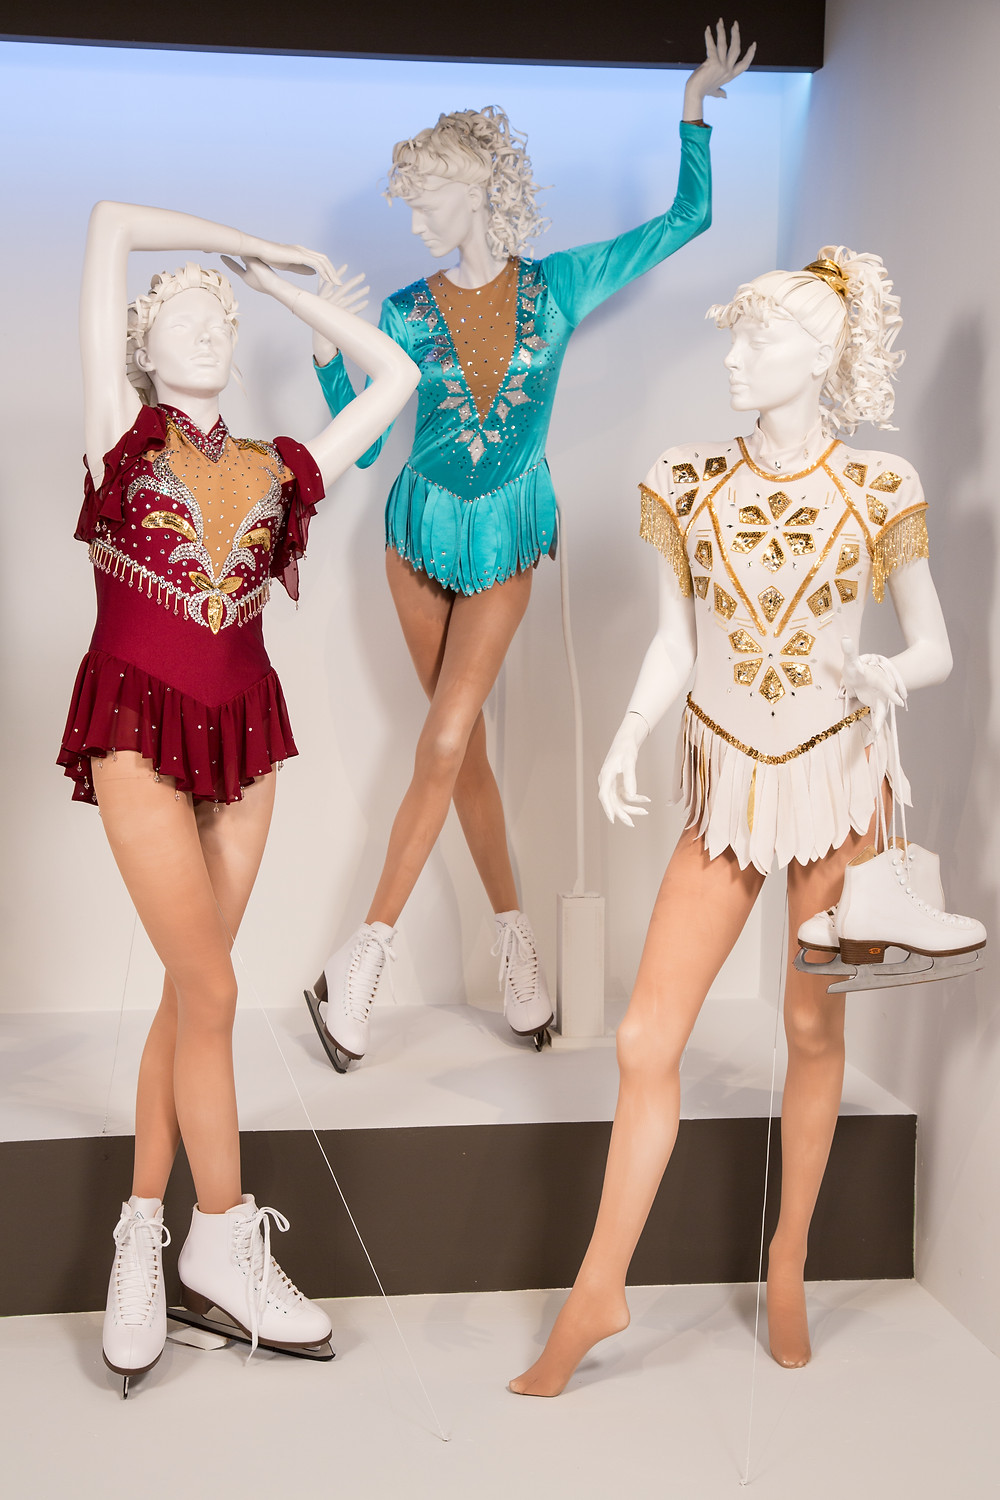 """I, Tonya"" costumes by Jennifer Johnson.  Costumes worn by actors: Margot Robbie as Tonya Harding."